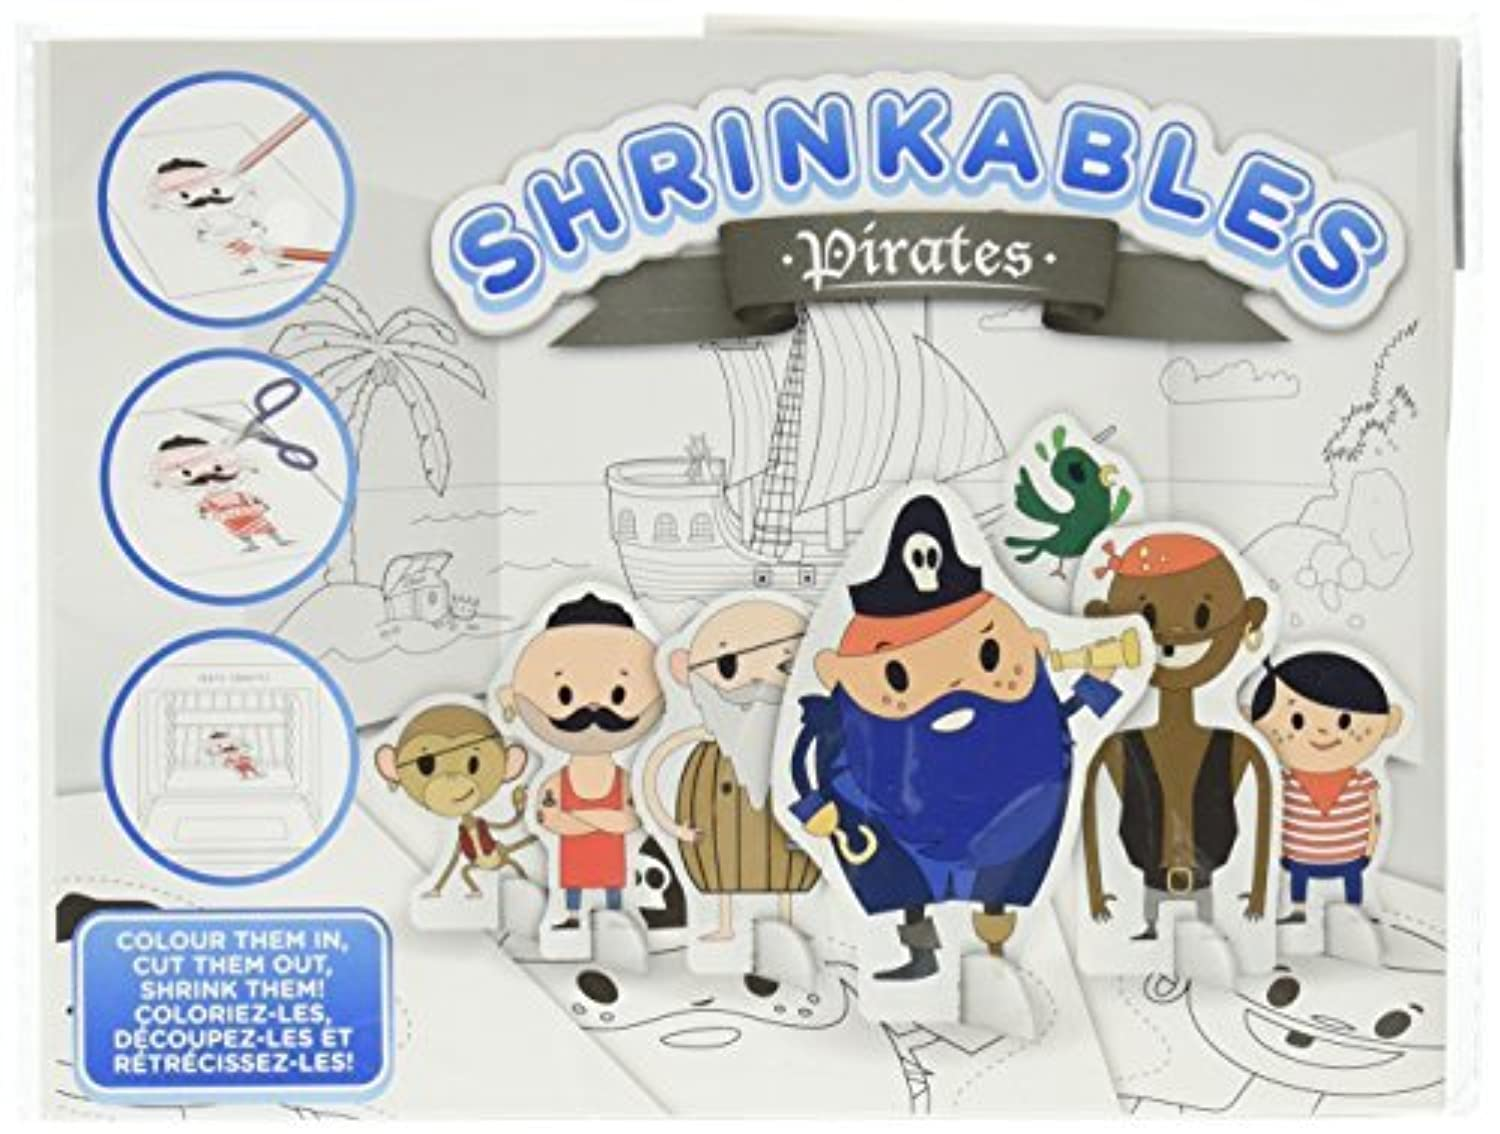 NPW-USA Shrinkables Pirates Kit [並行輸入品]